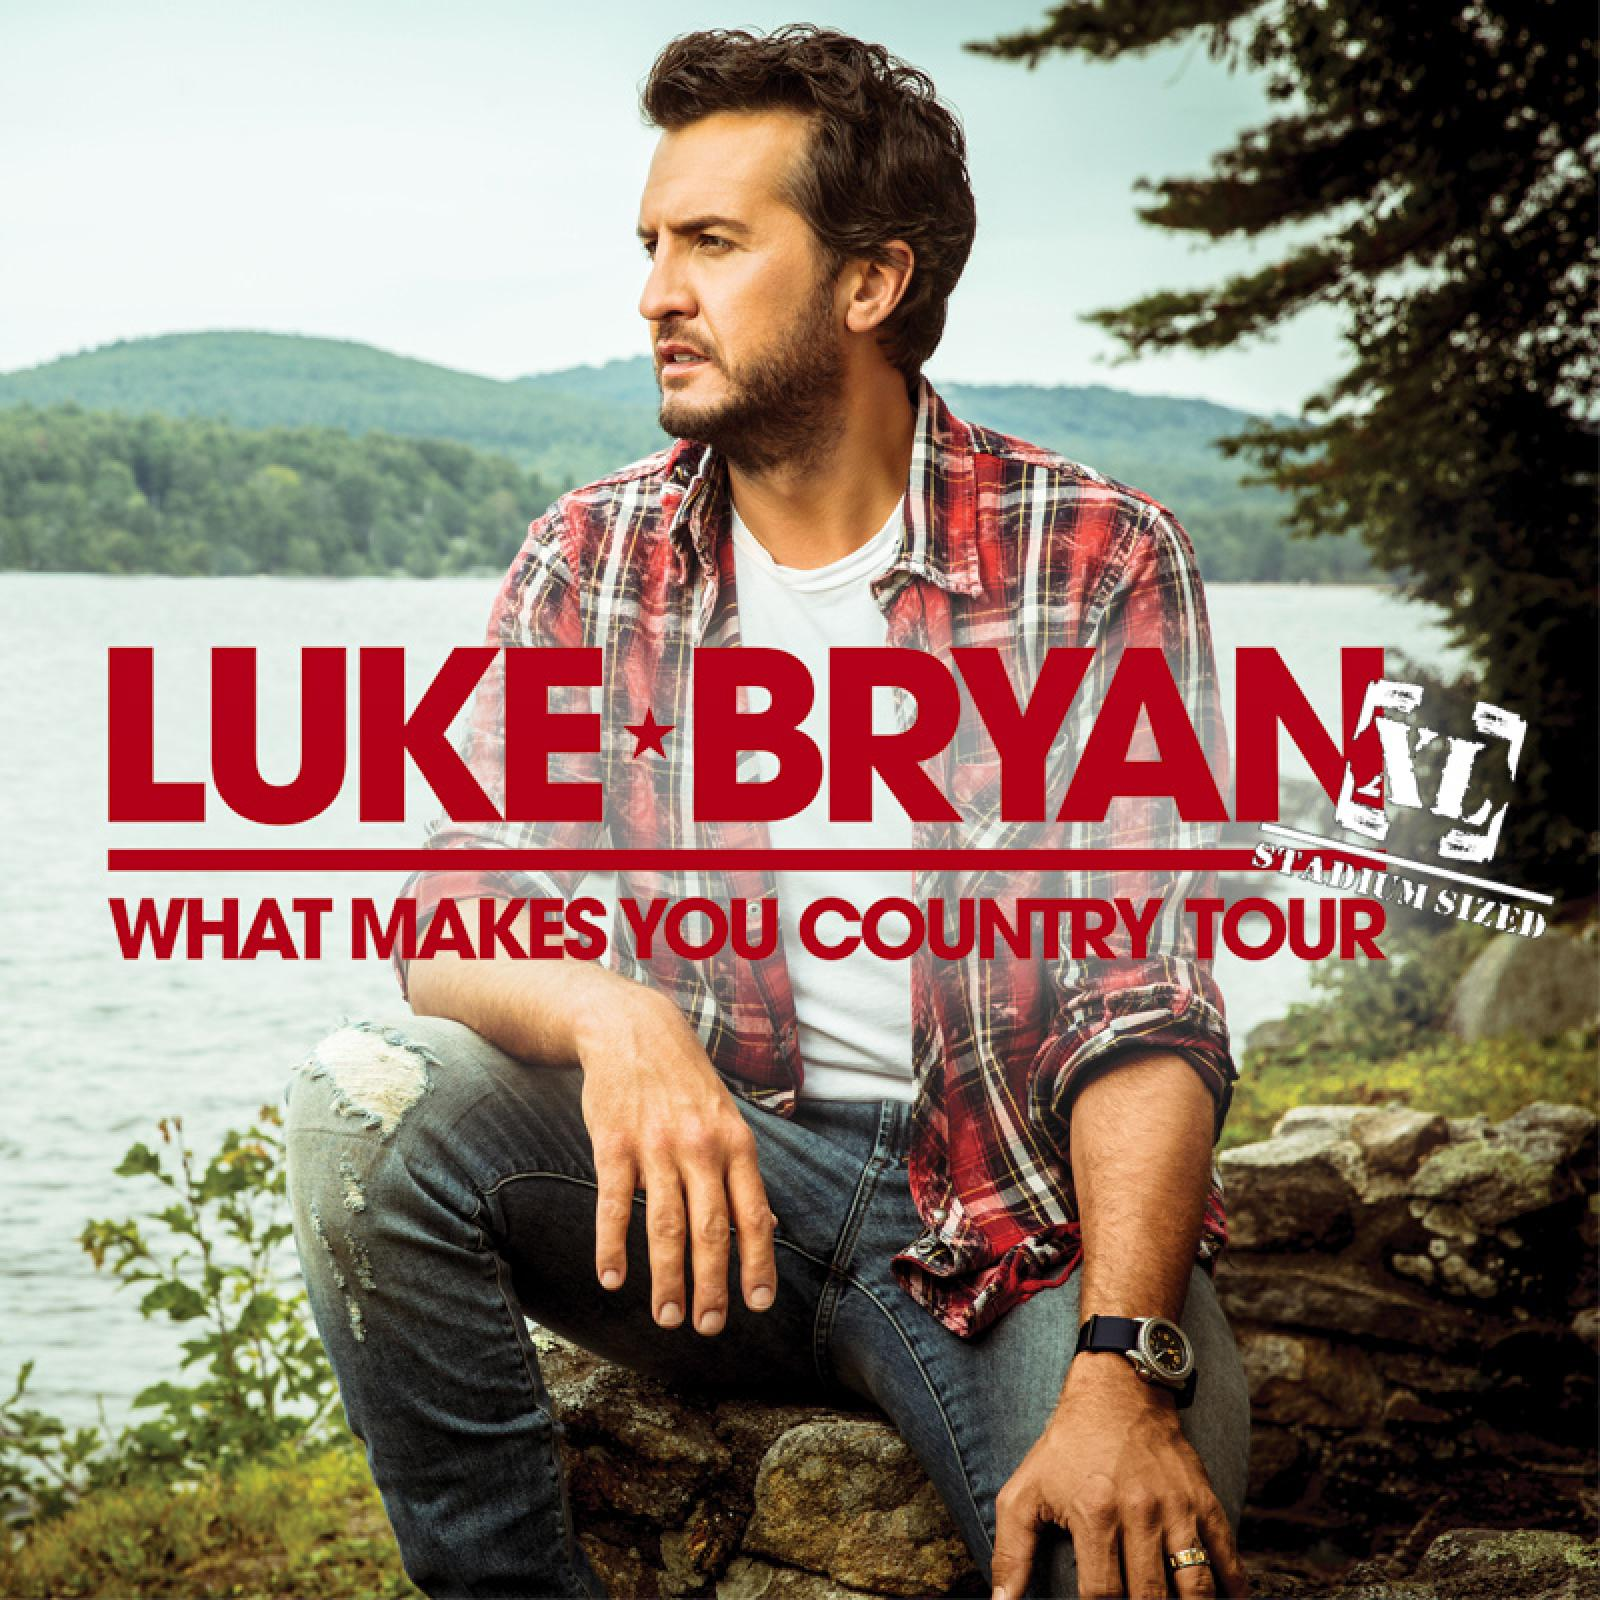 Luke Bryan, Sam Hunt & Jon Pardi Concert Tickets at TixTM, East Rutherford, New Jersey, United States